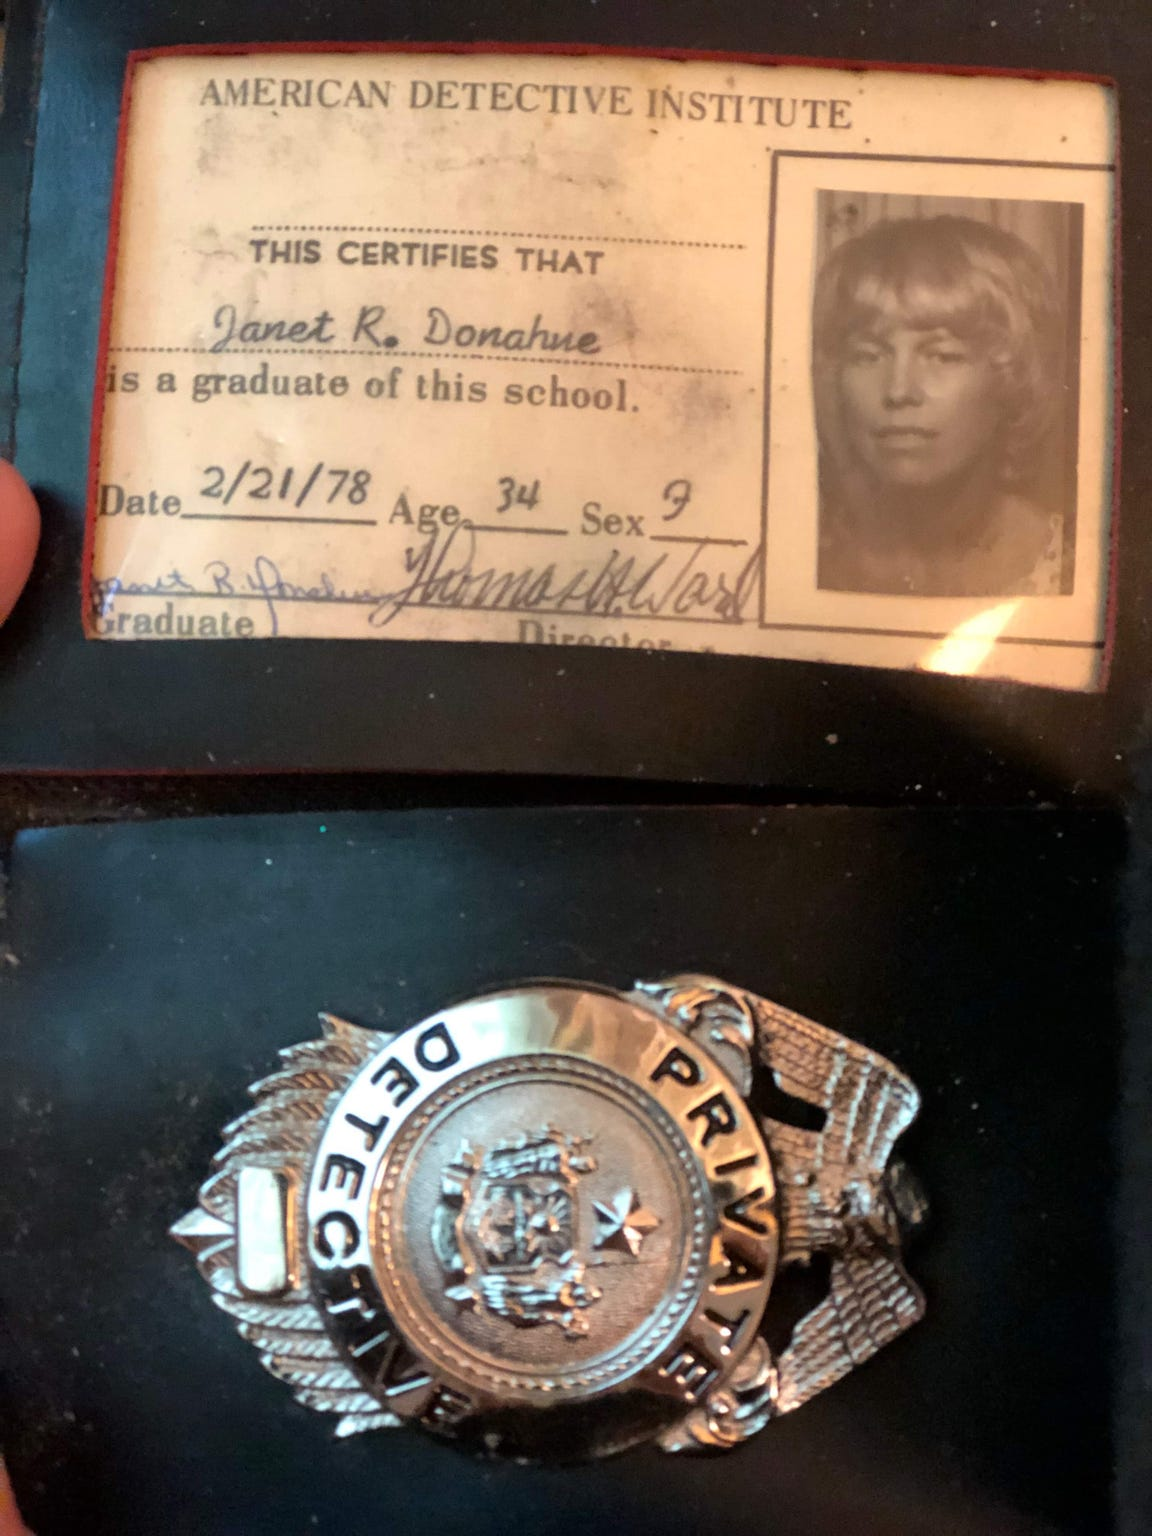 After her friend Cheryl Hughes' mysterious abduction and death, Janet Donahue obtained her detective badge in hopes of finding answers.